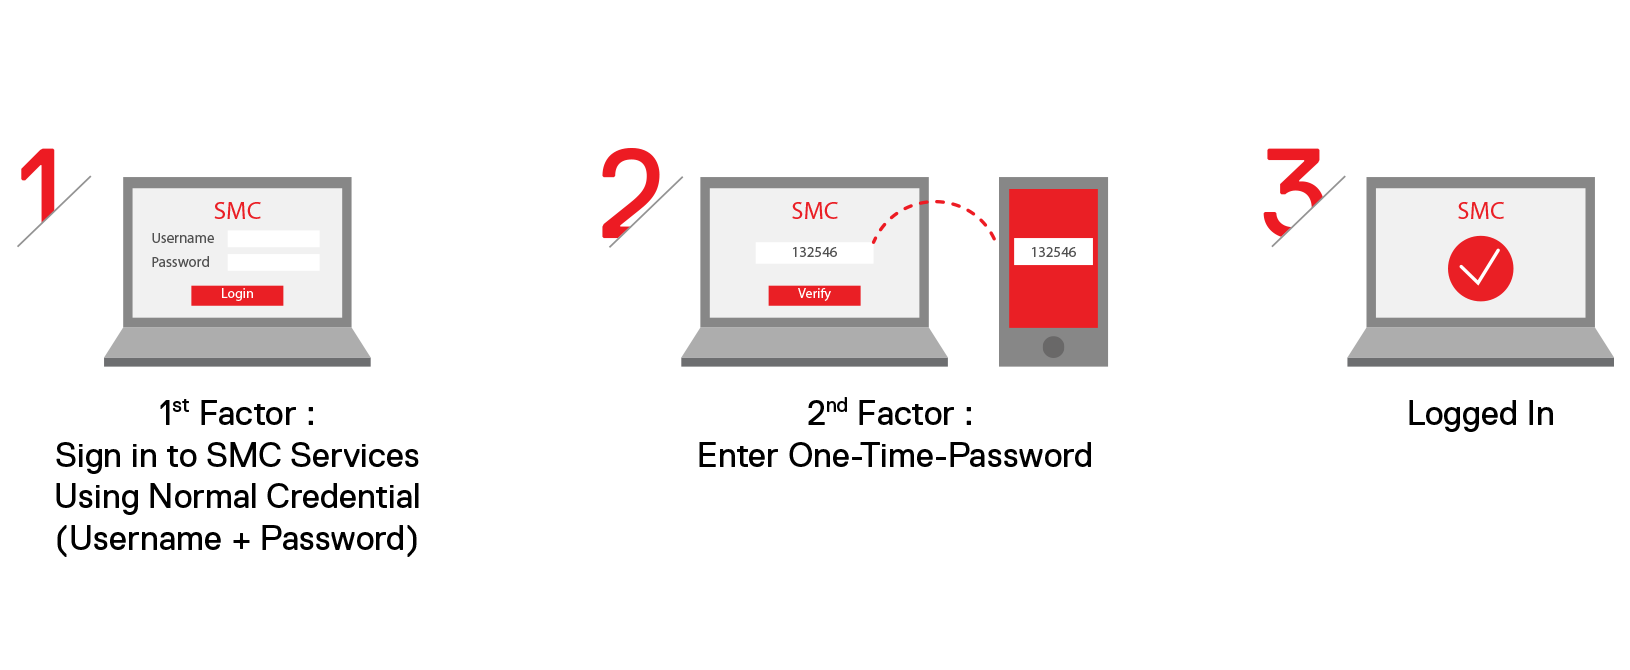 As A One Stop ICT Solution Provider SmarTone Delivers Cost Effective Cloud Based Authentication Solutions From Design Deployment To Support